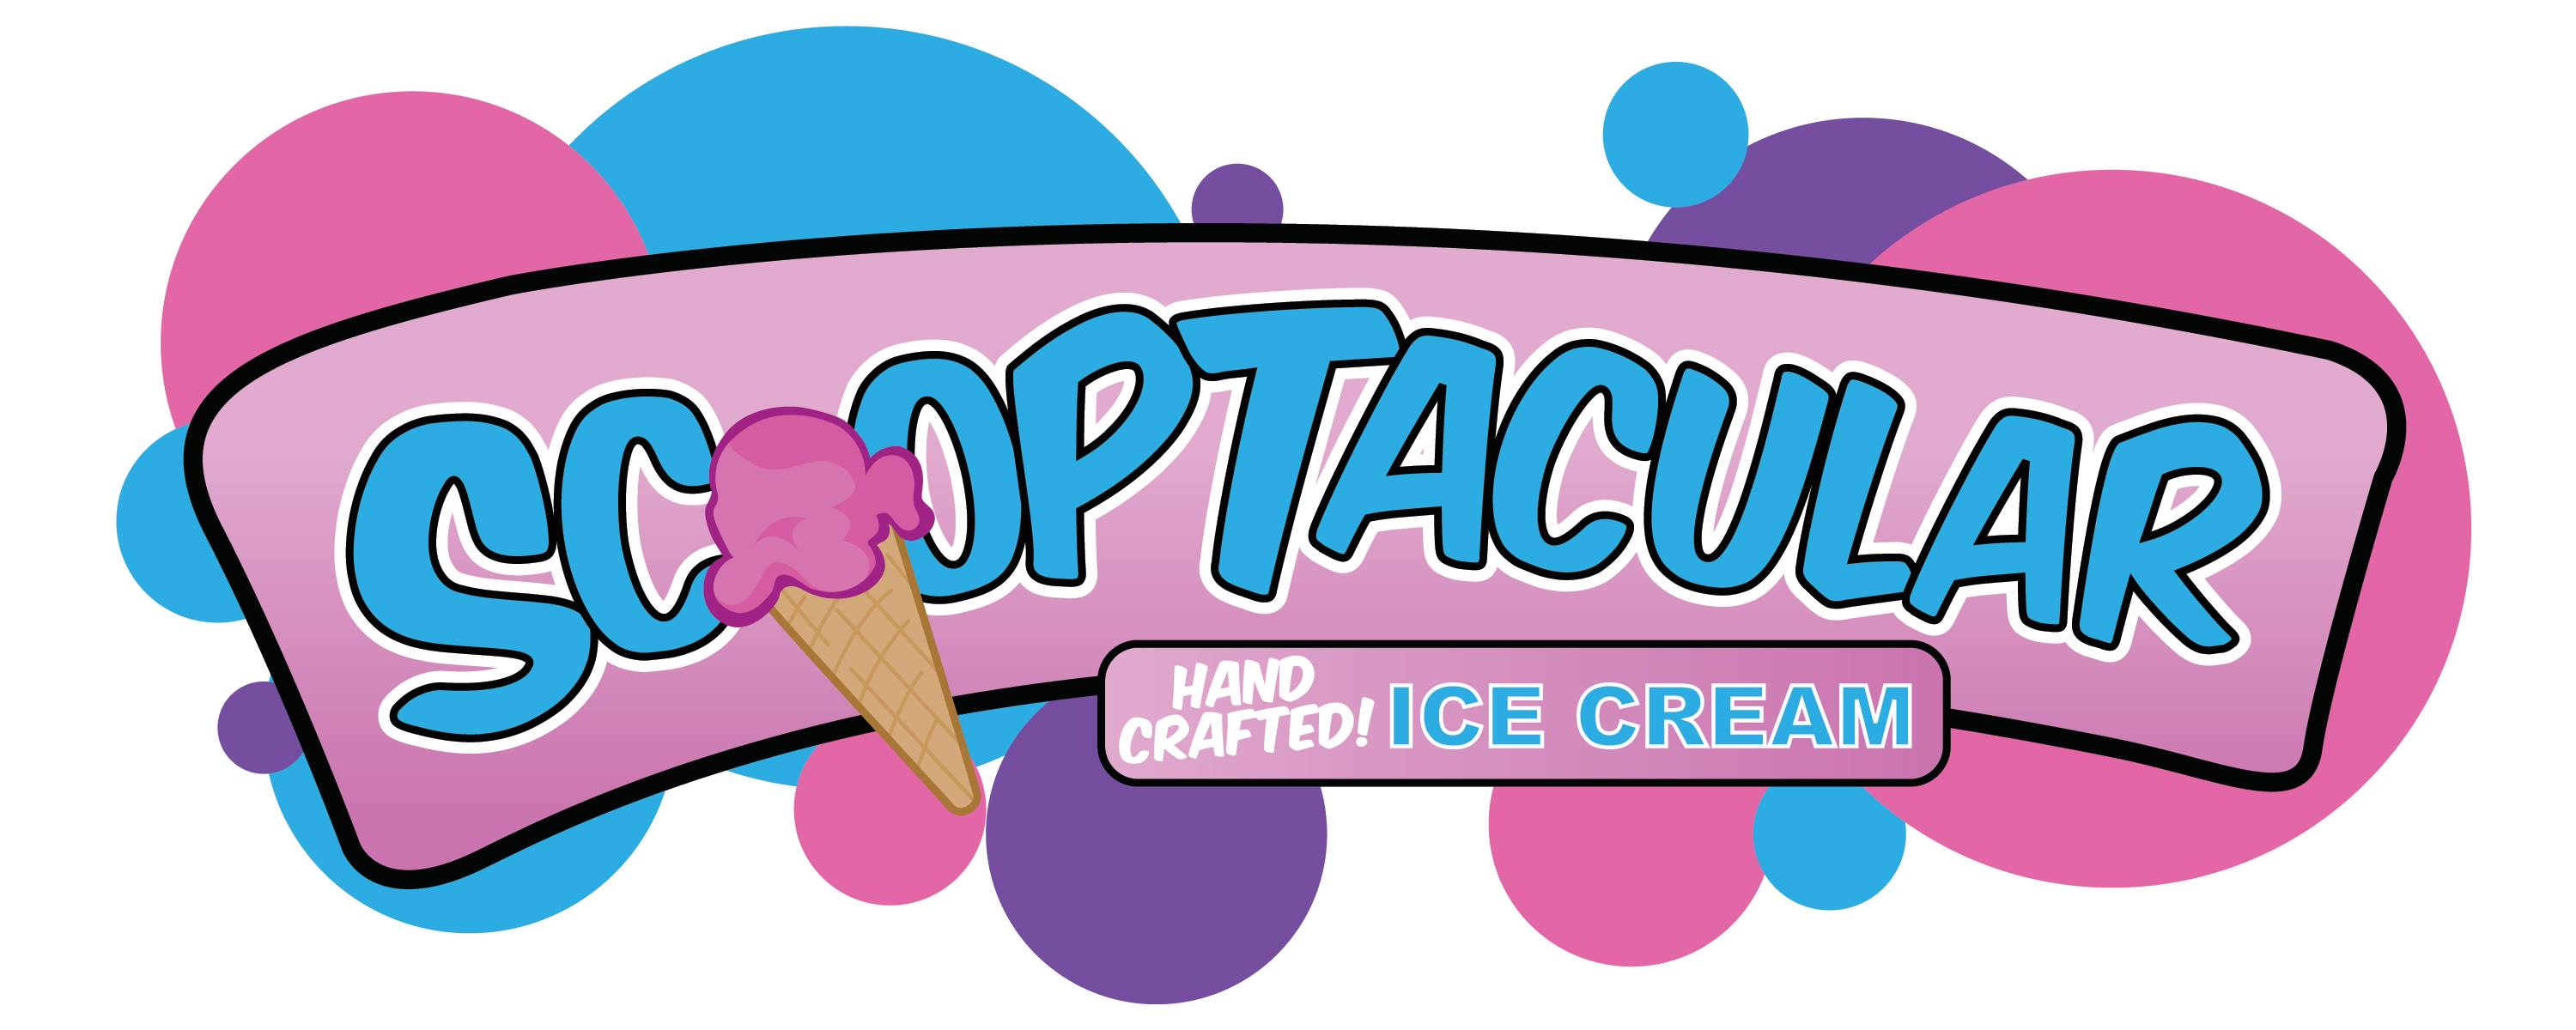 Laveen-based Scooptacular ice cream logo.